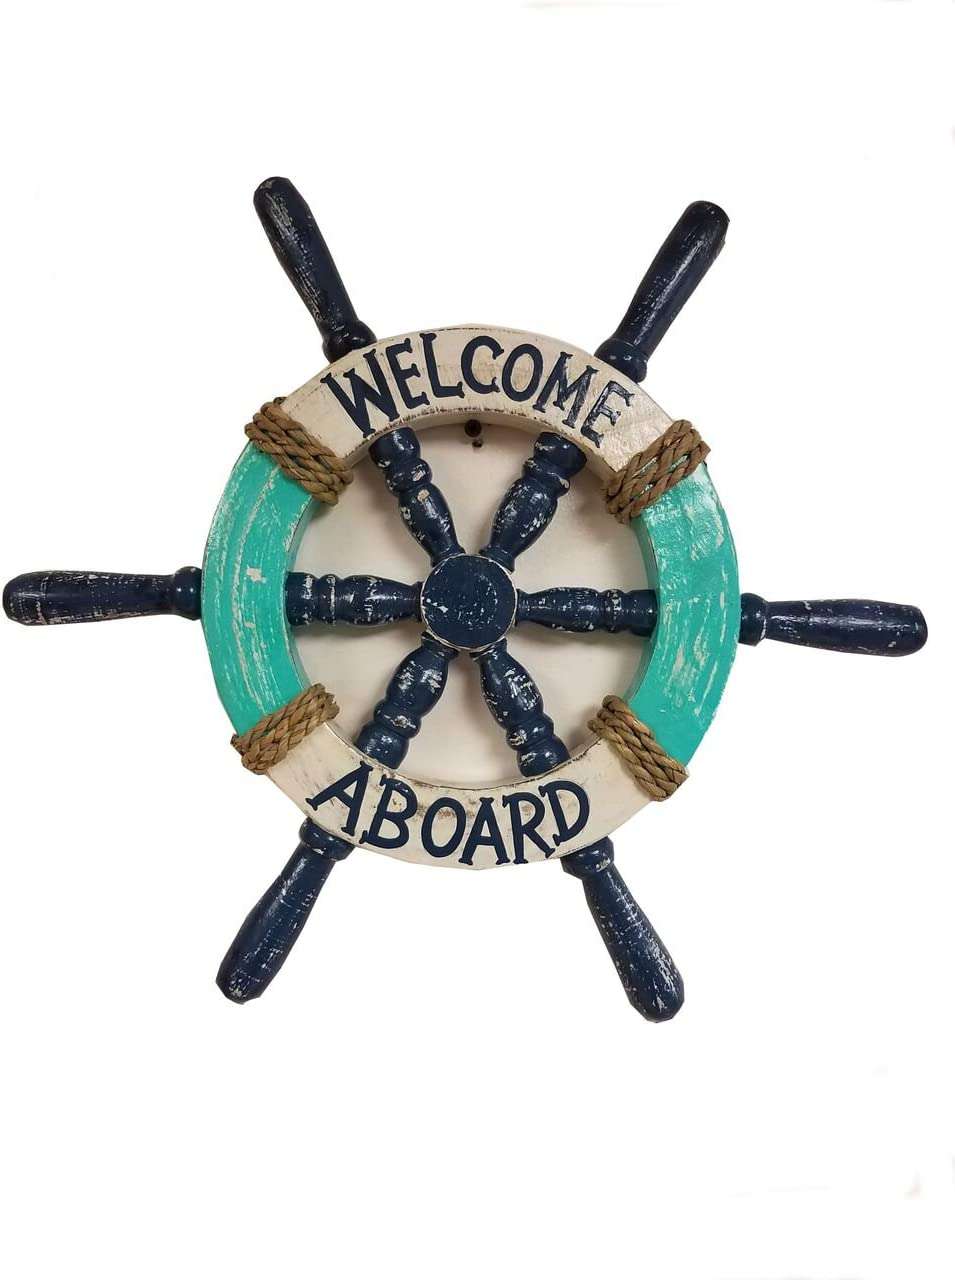 BEAUTIFUL HANDCARVED PAINTED WOOD WELCOME ABOARD SHIPS WHEEL NAUTICAL DECOR